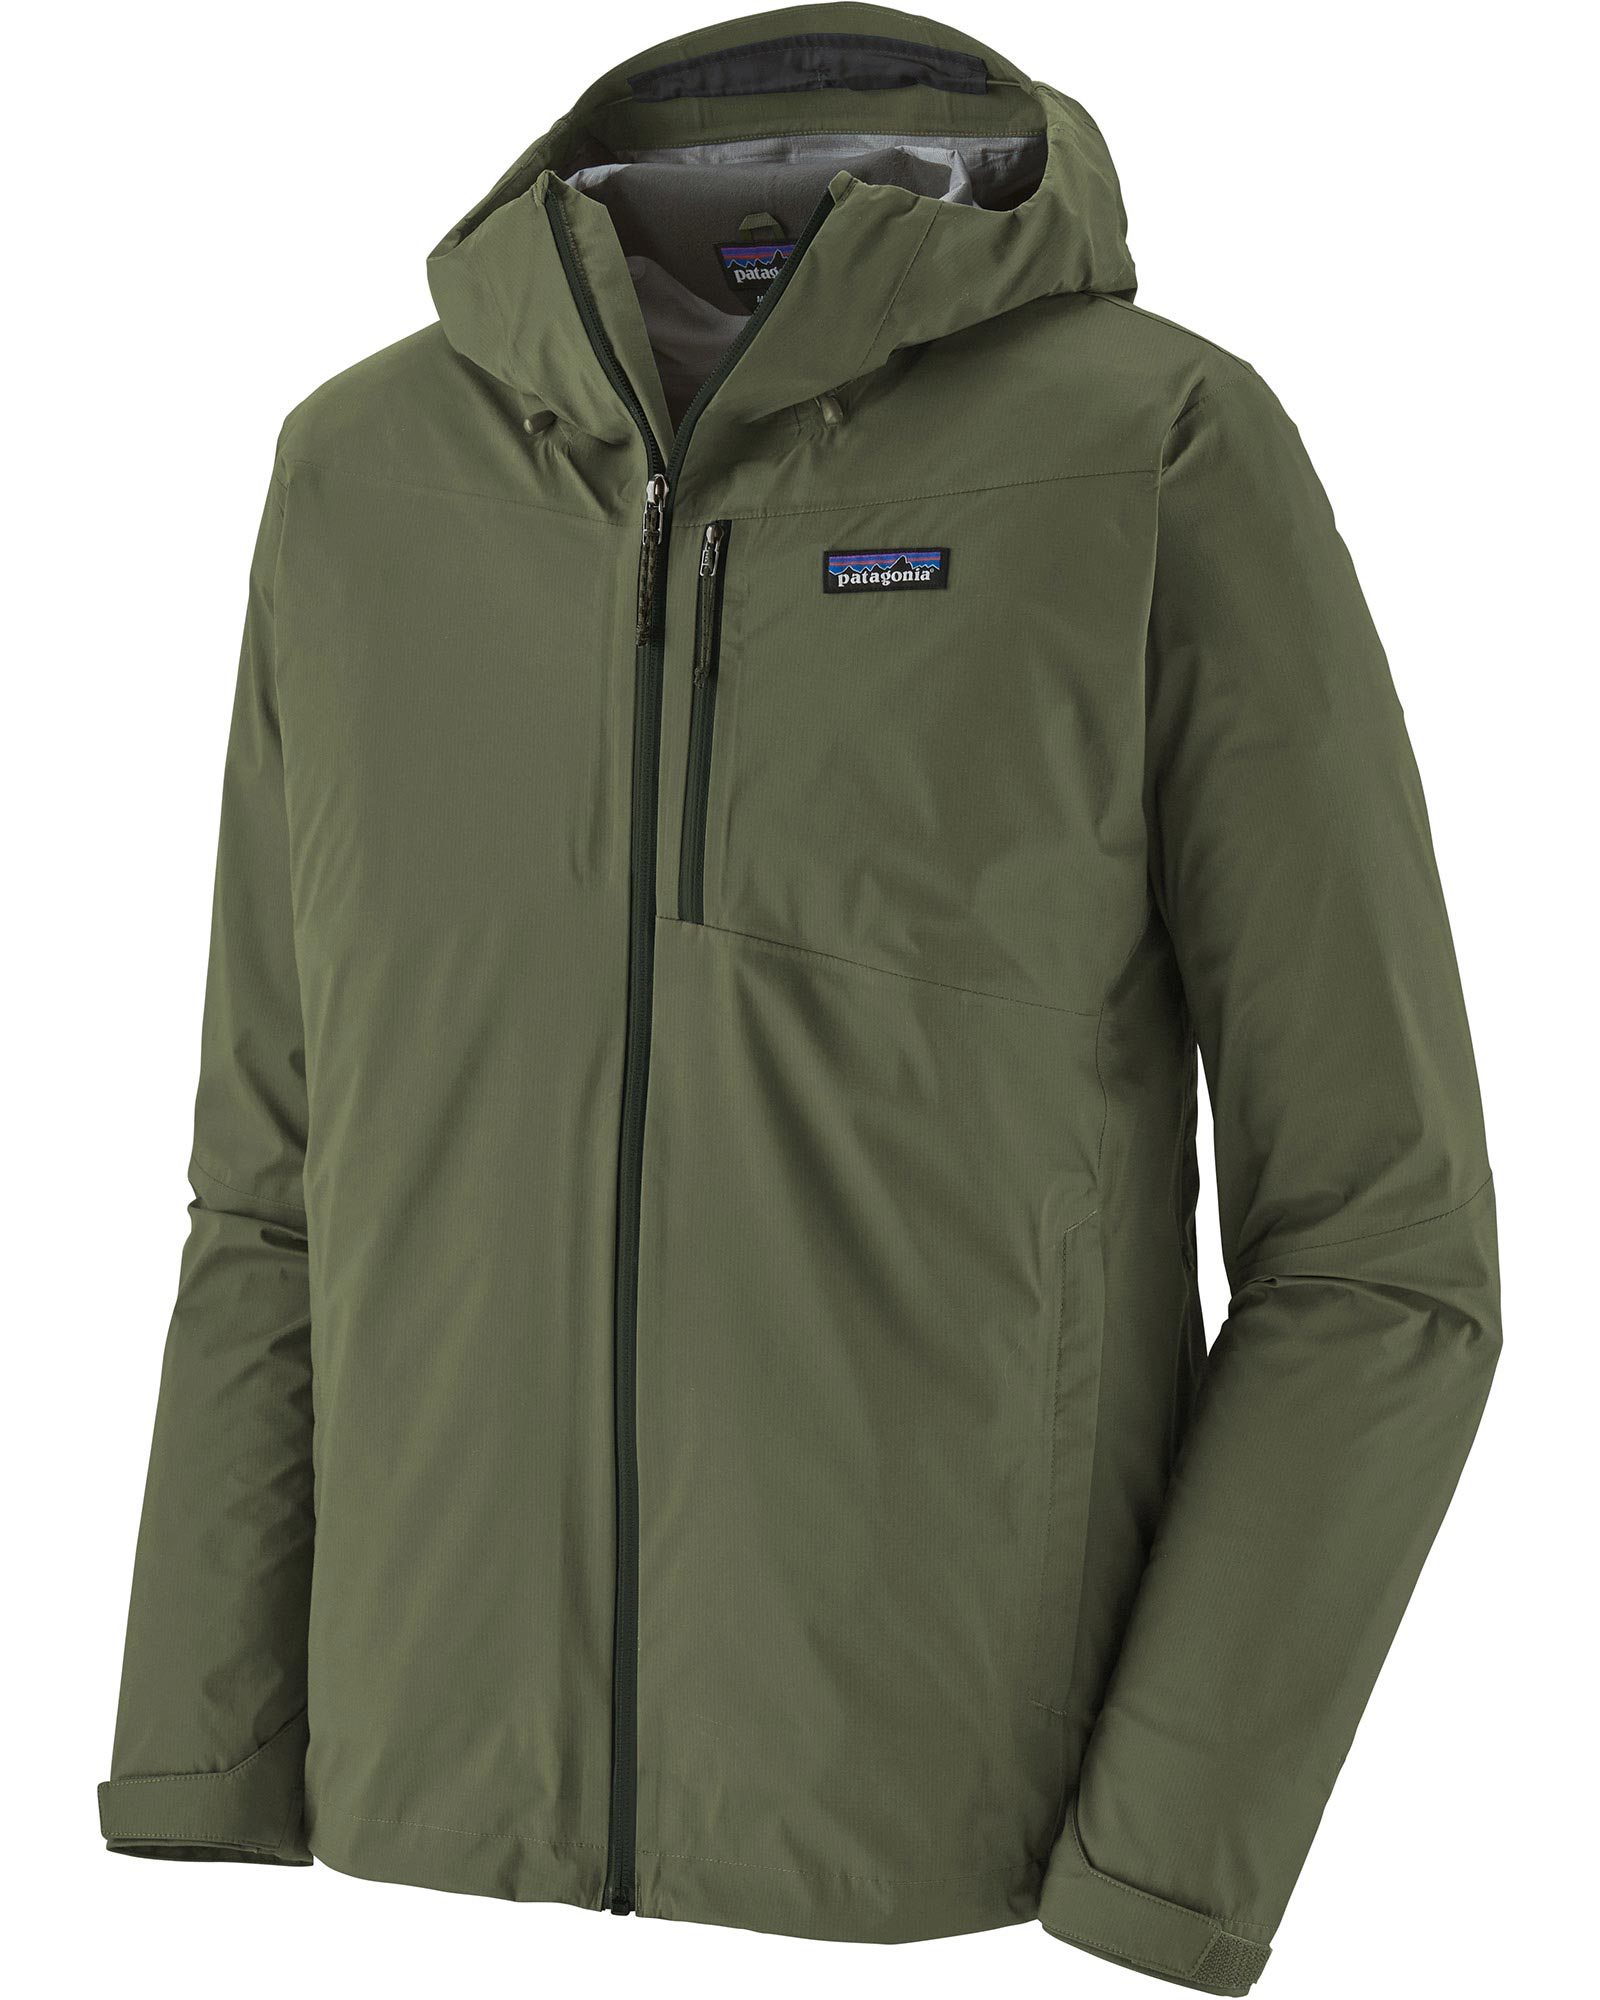 Patagonia Men's Rainshadow Jacket 0